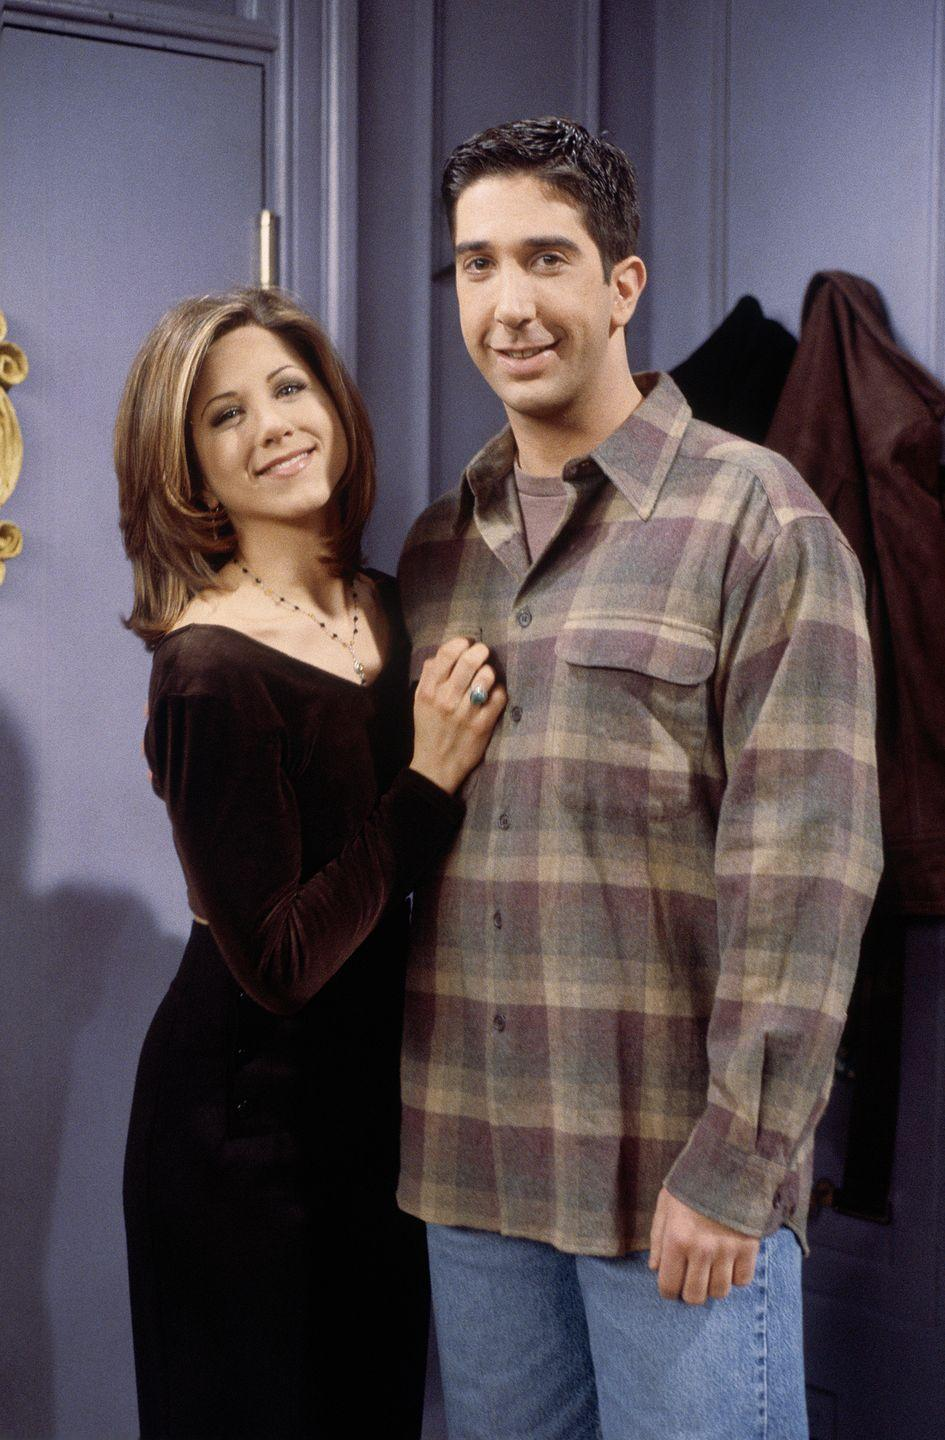 <p>Okay, whether or not you think Rachel and Ross (David Schwimmer) are the OTP, you have to admit they had that on-screen chemistry. The whole show is really just 236 episodes leading to their love story. It's honestly great.</p>